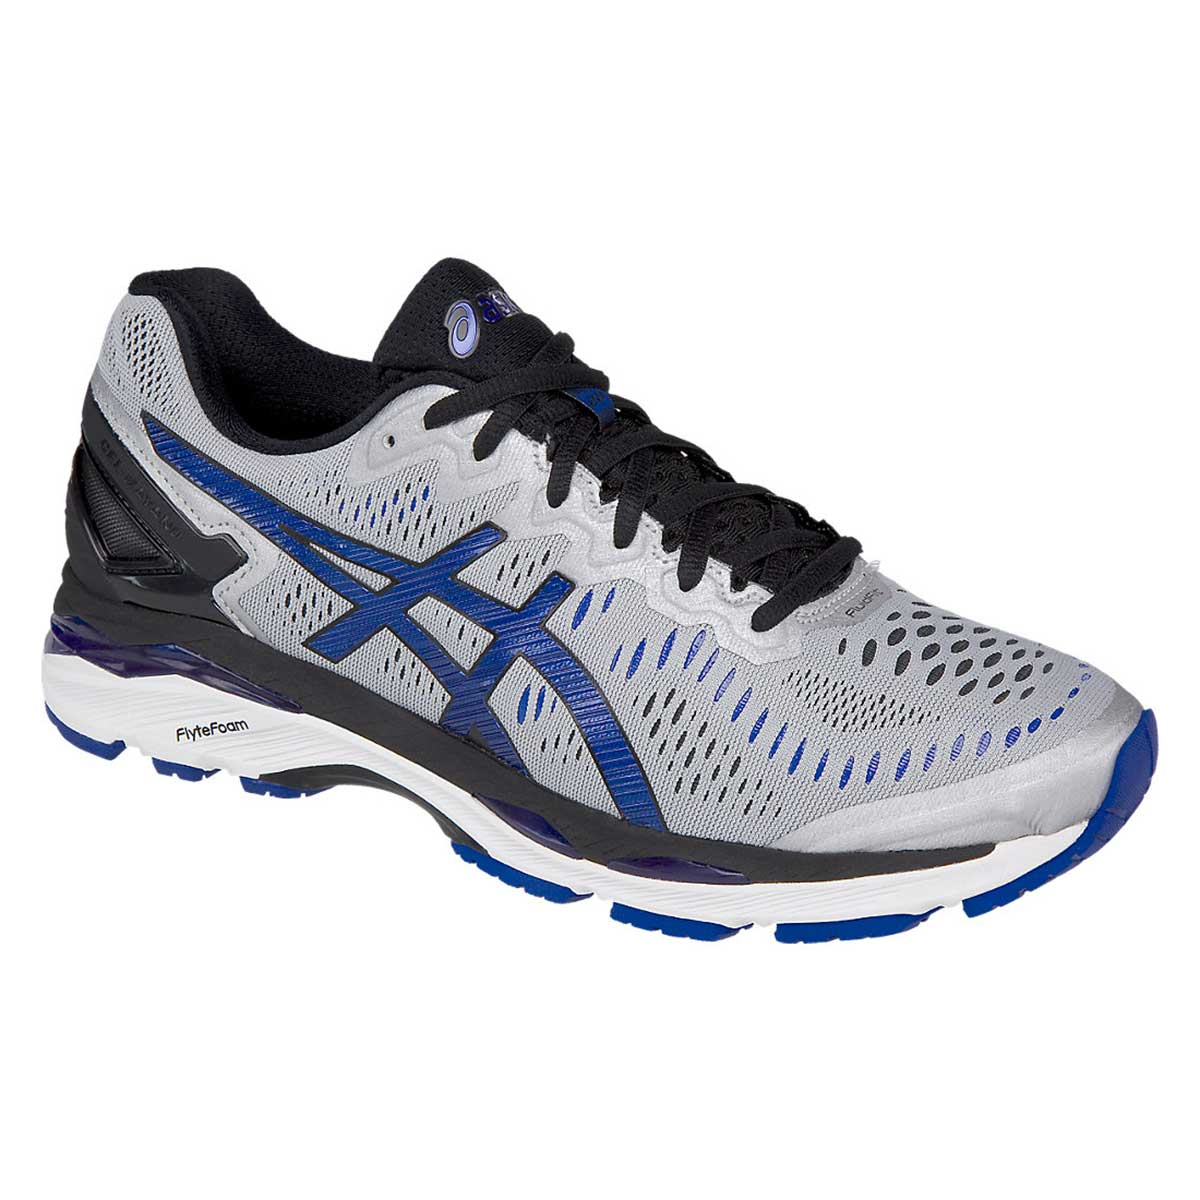 pretty nice 88b95 de3f4 Asics Gel-Kayano 23 (2E) Running Shoes (Silver/Imperial/Black)